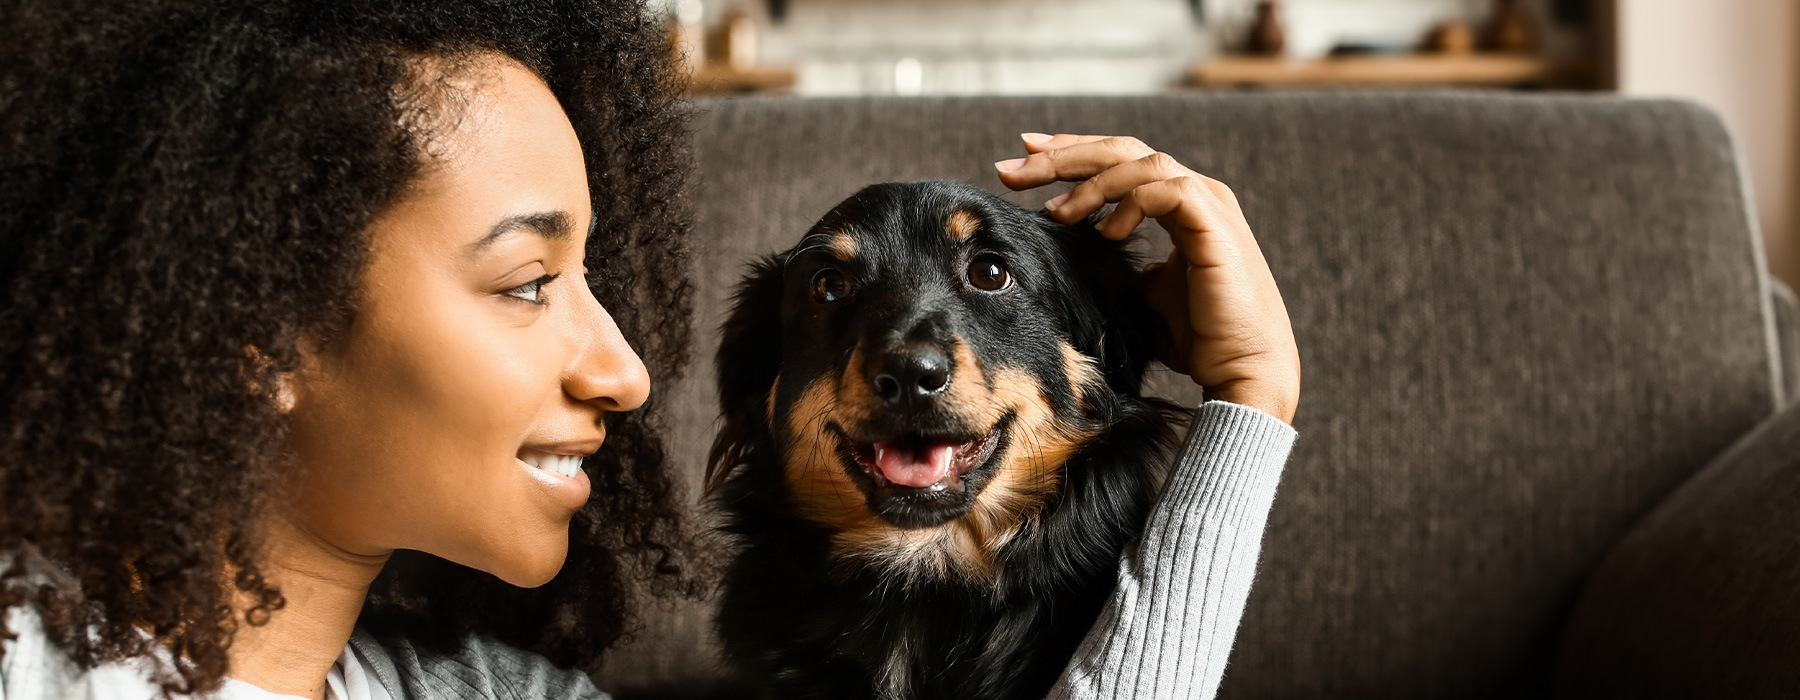 lifestyle image of a woman embracing a dog